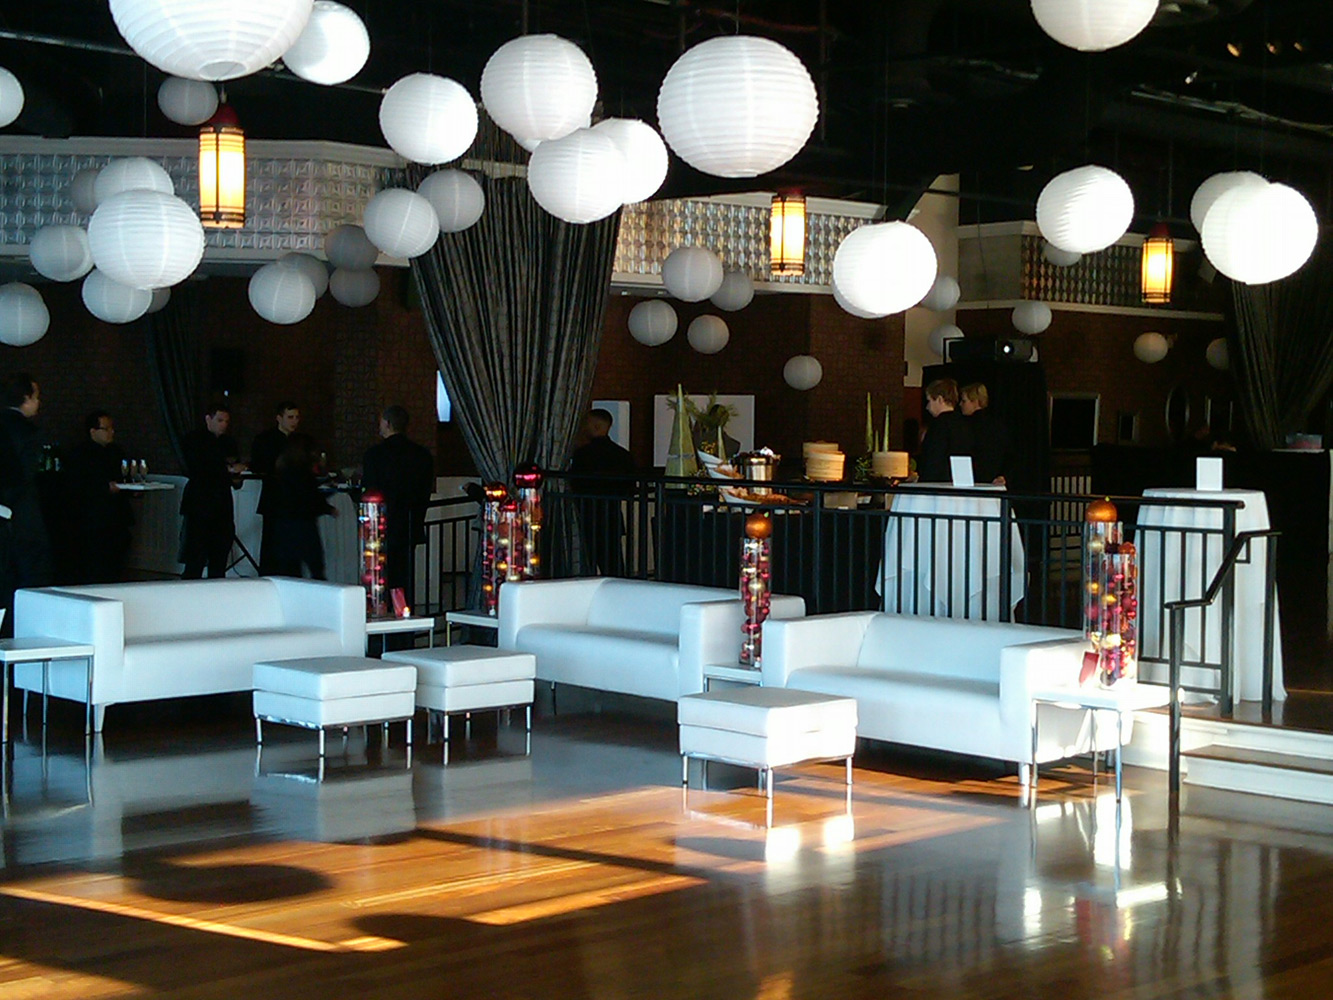 Giant white orbs above sitting area